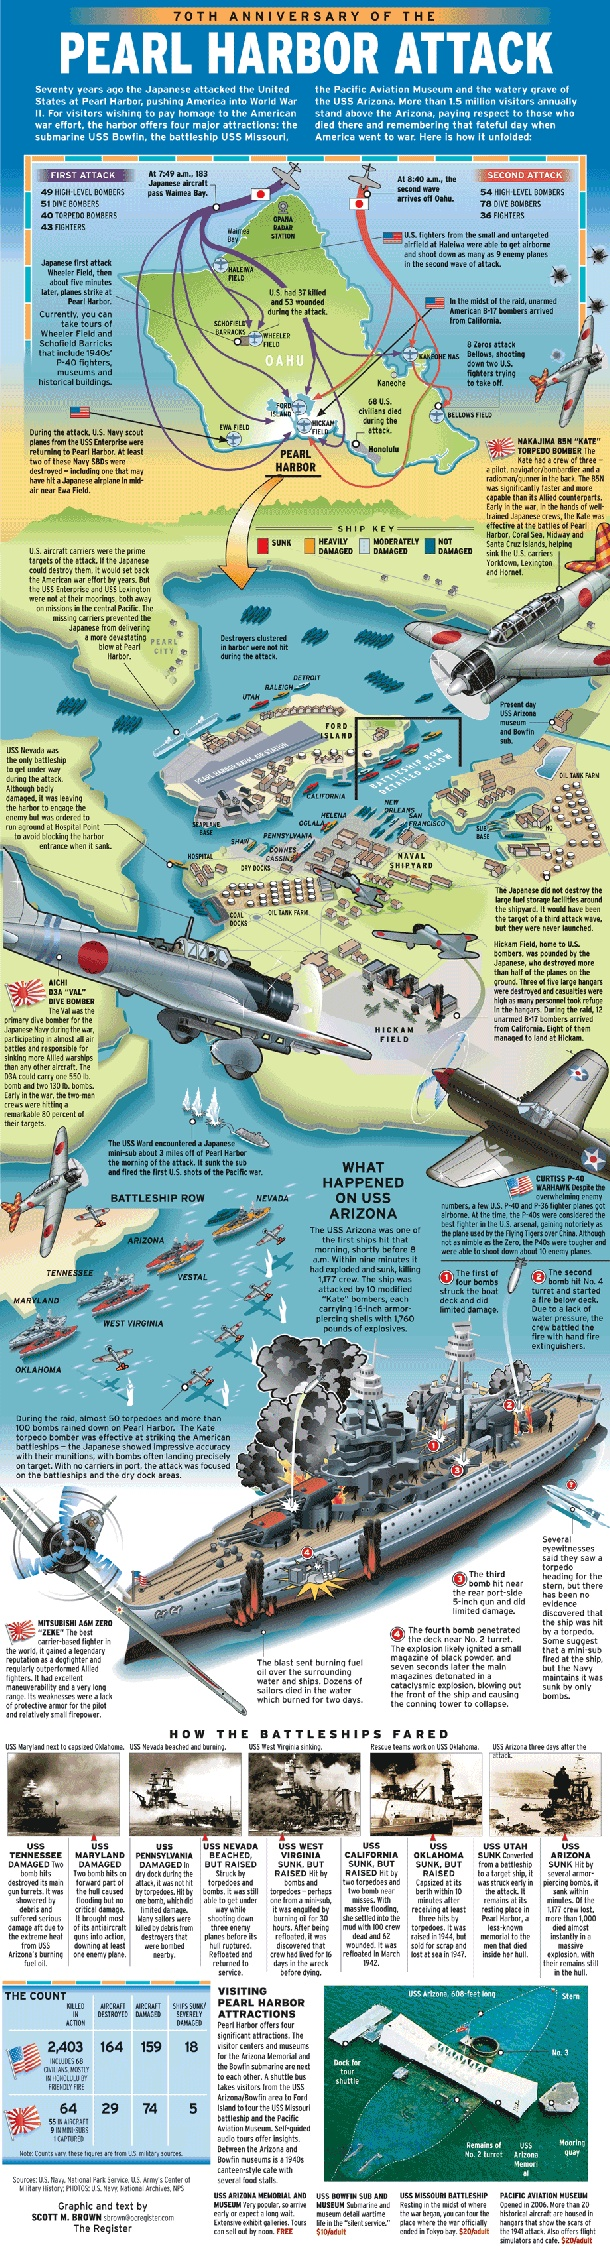 70th Anniversary Of The Pearl Harbor Attack [INFOGRAPHIC]